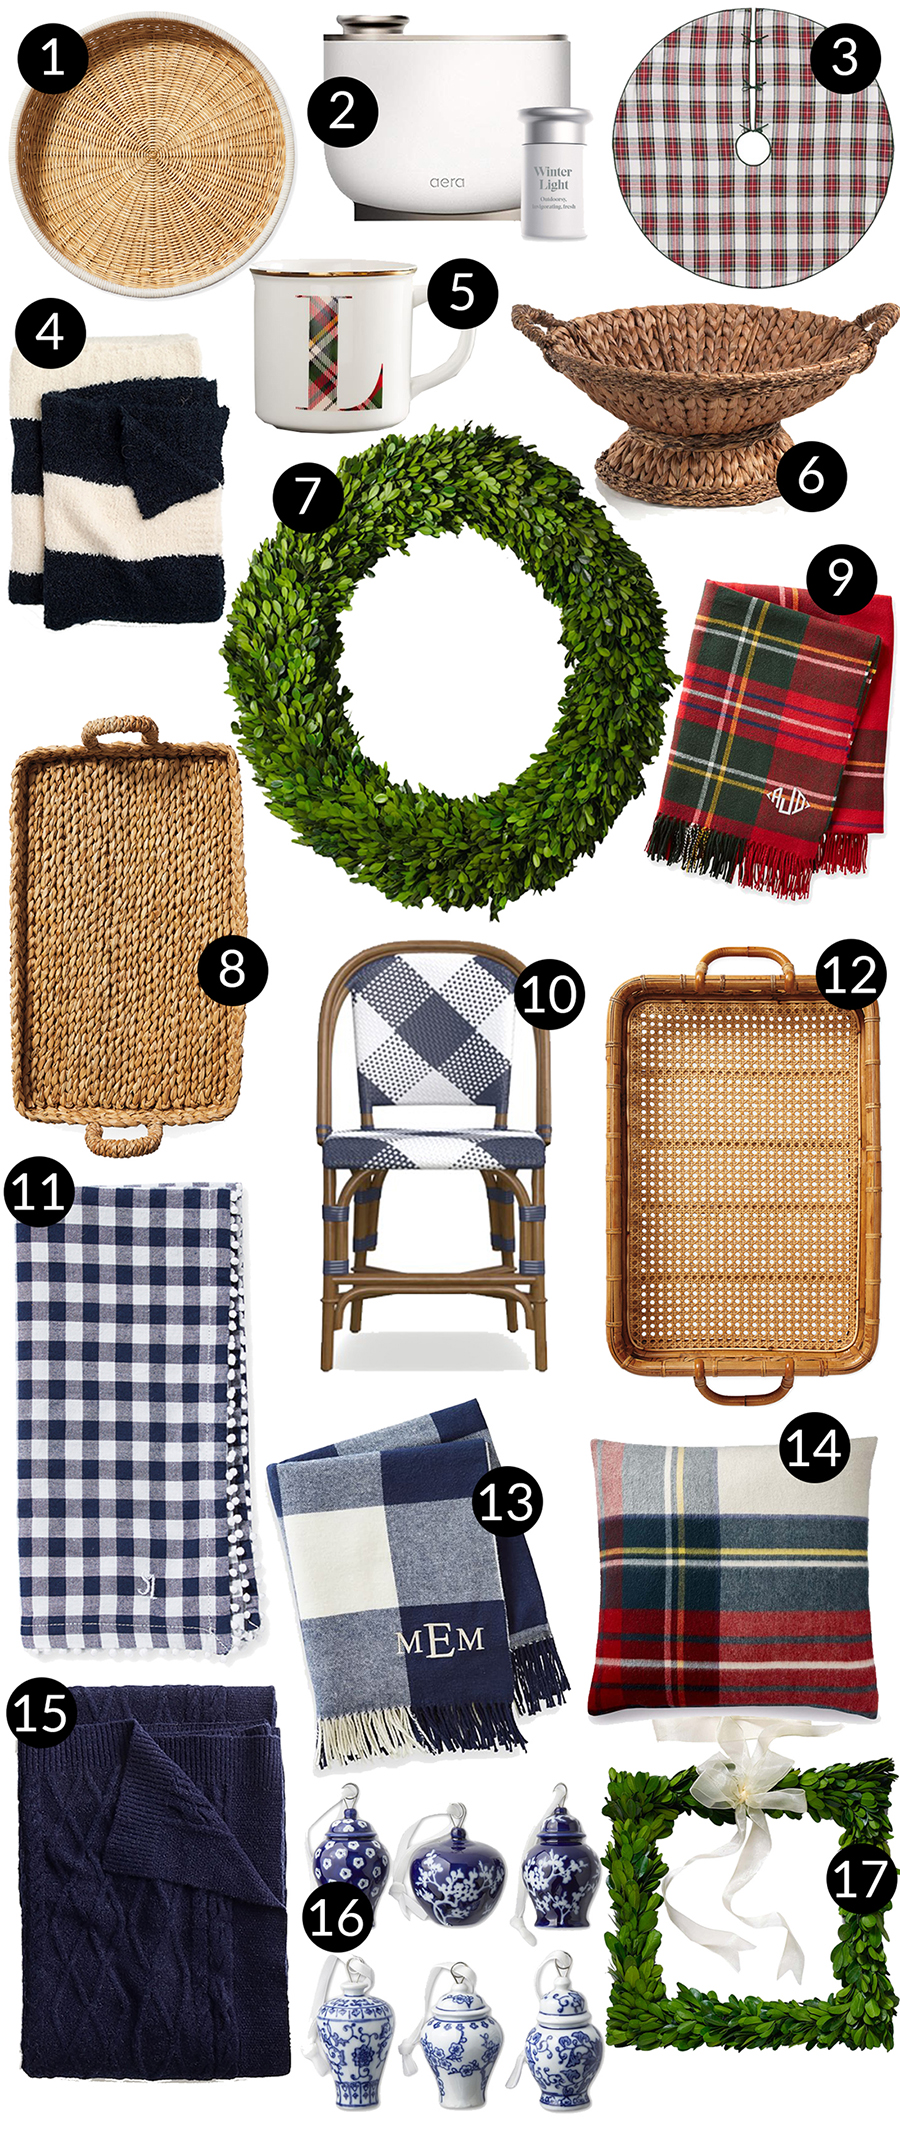 Preppy Holiday Home Gift Guide